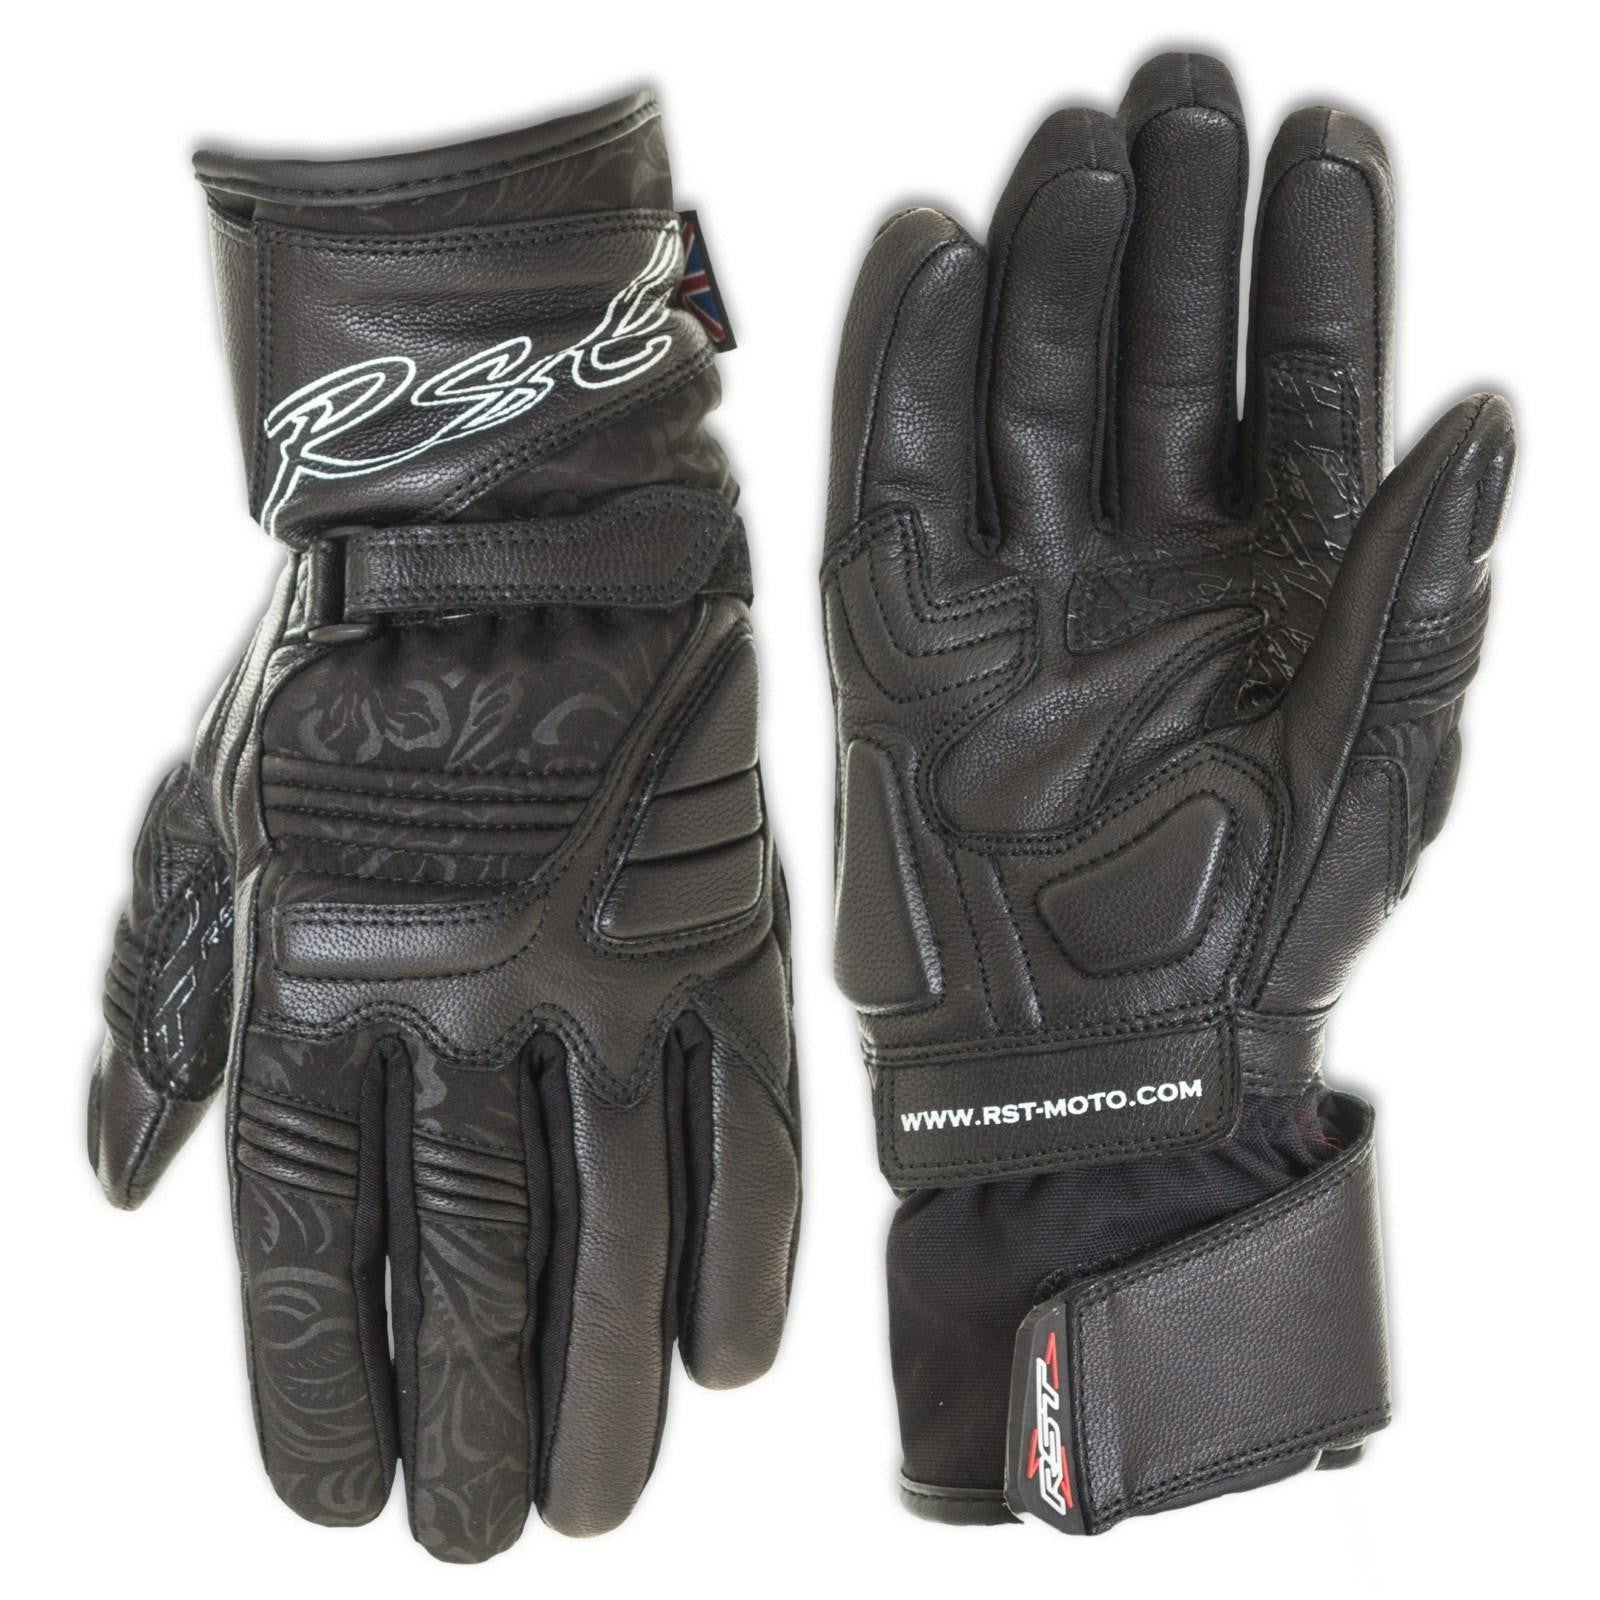 RST - Madison II CE Waterproof Ladies Gloves